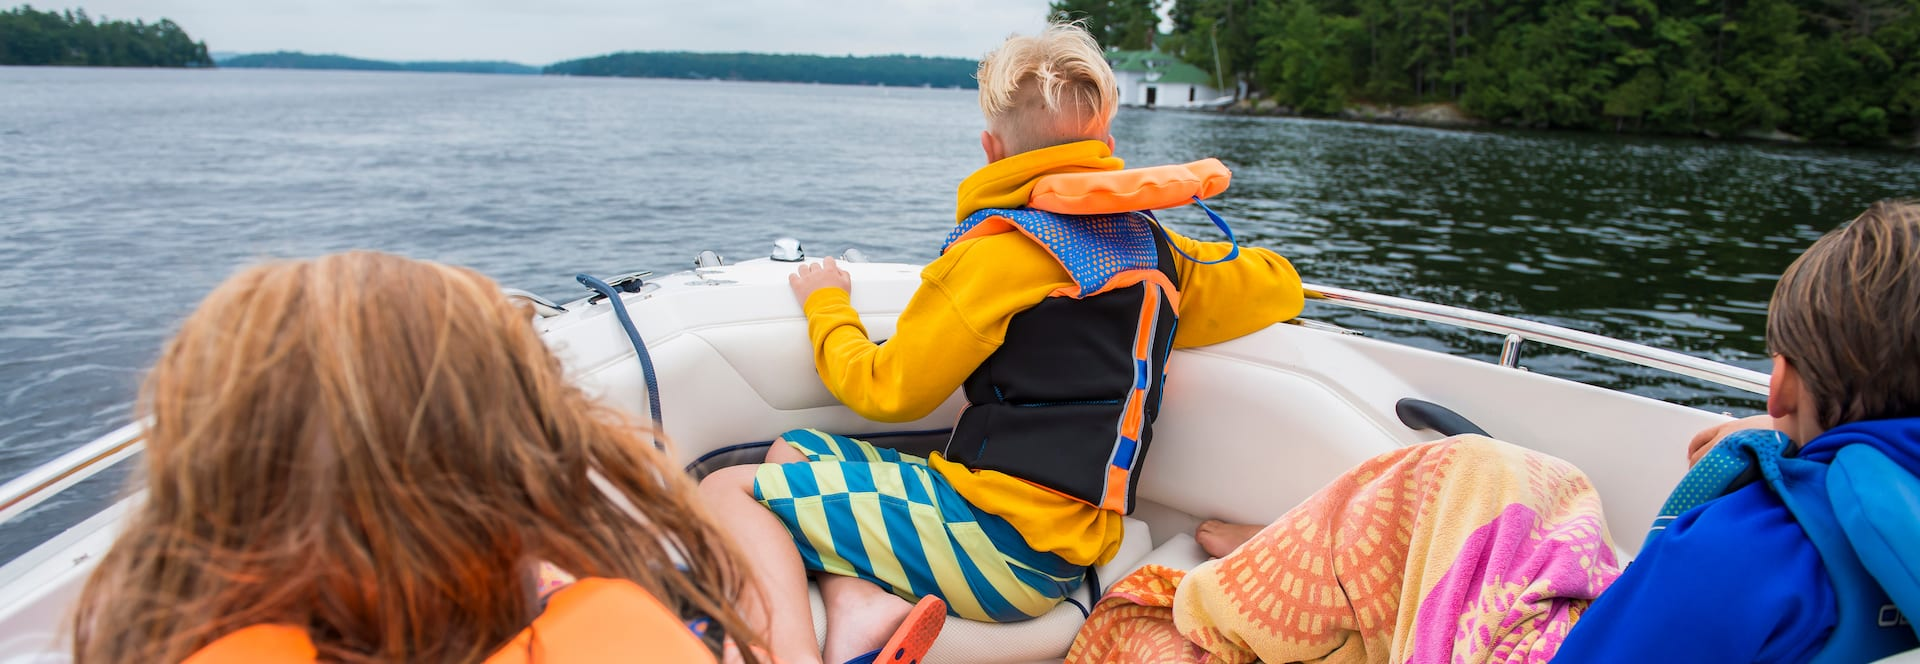 Boating Accident Law Atlanta